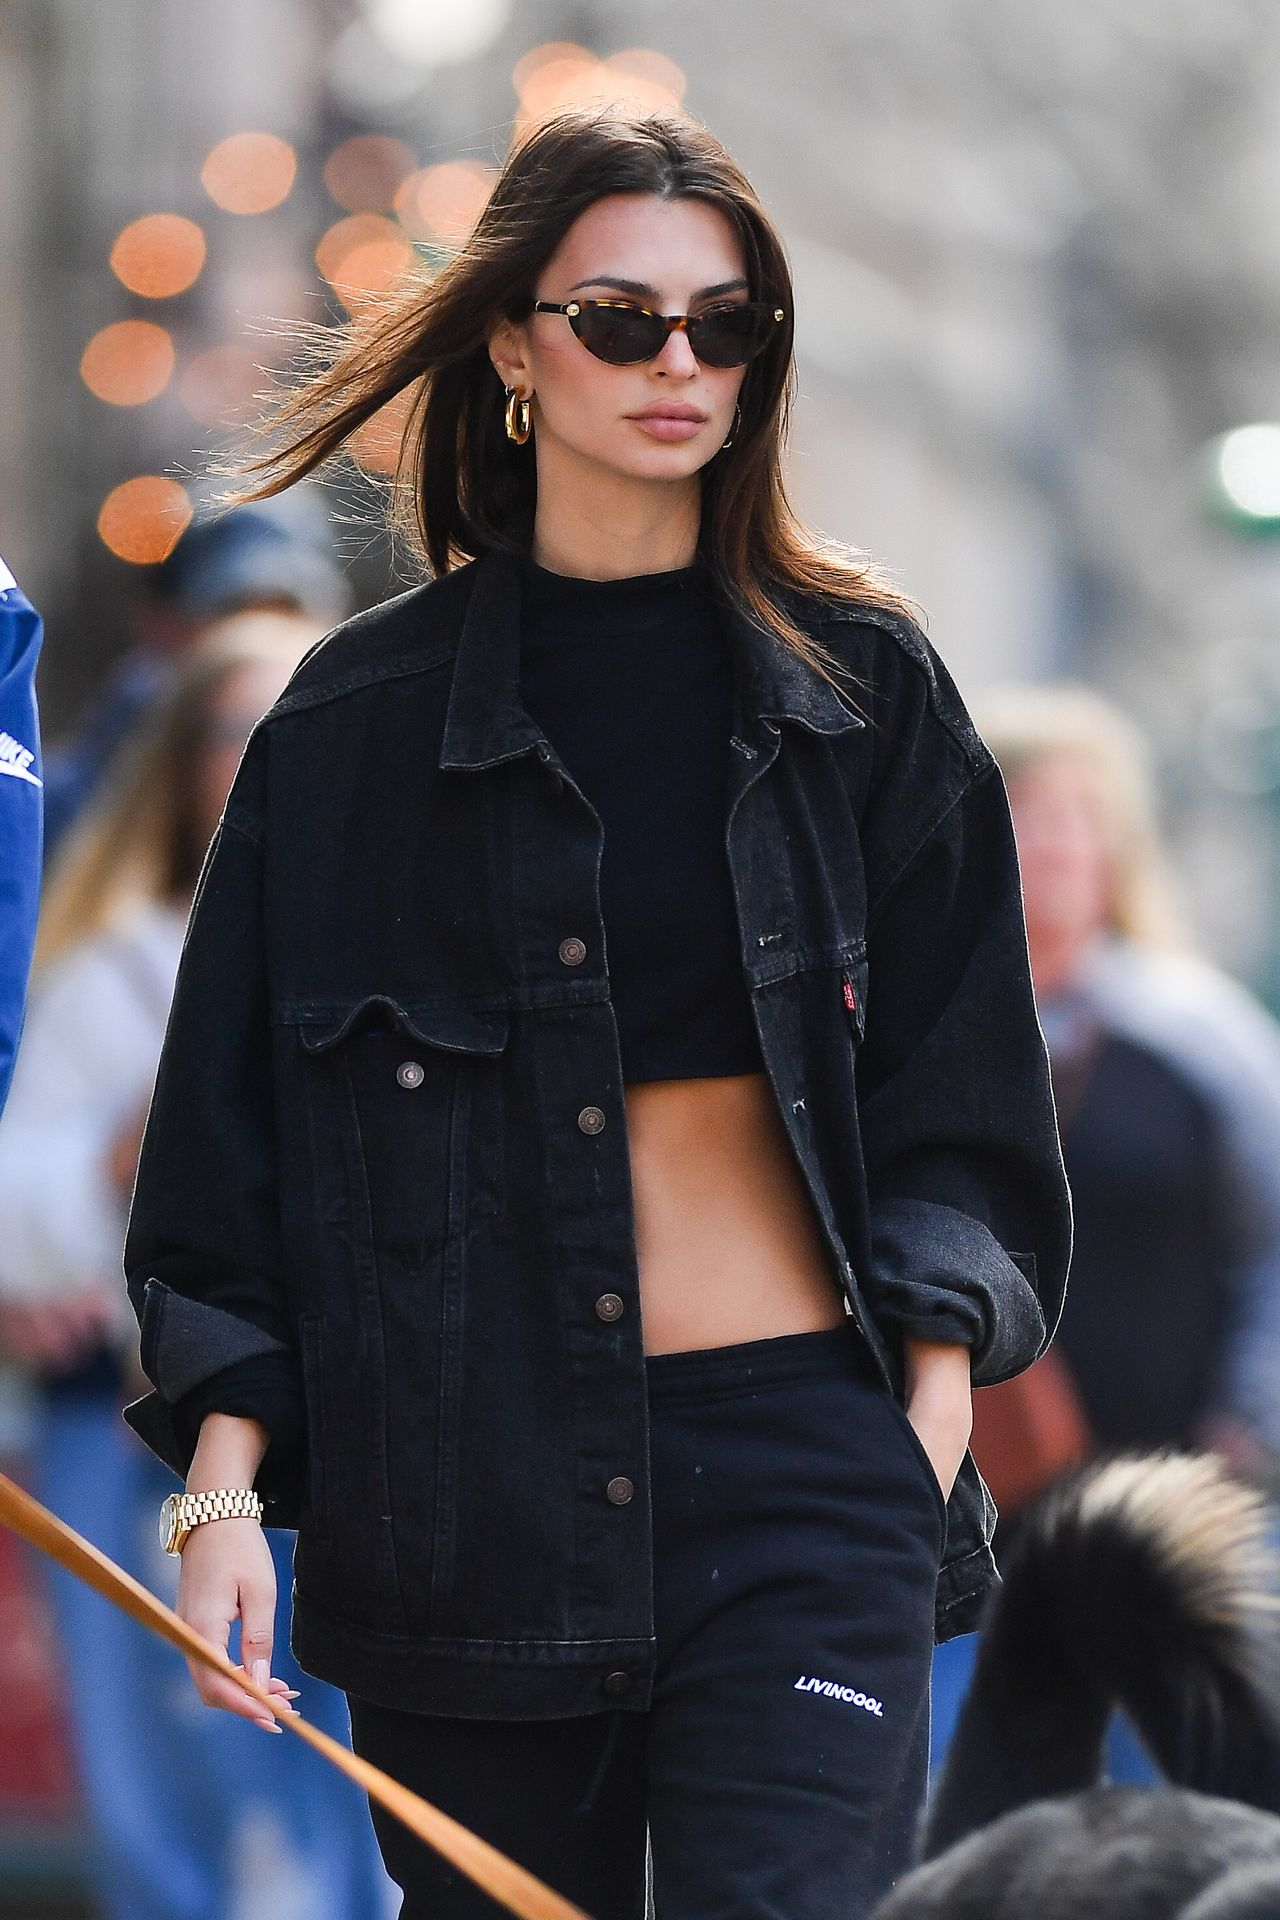 Emily Ratajkowski Walks With Her Dog Colombo In Nyc 0023